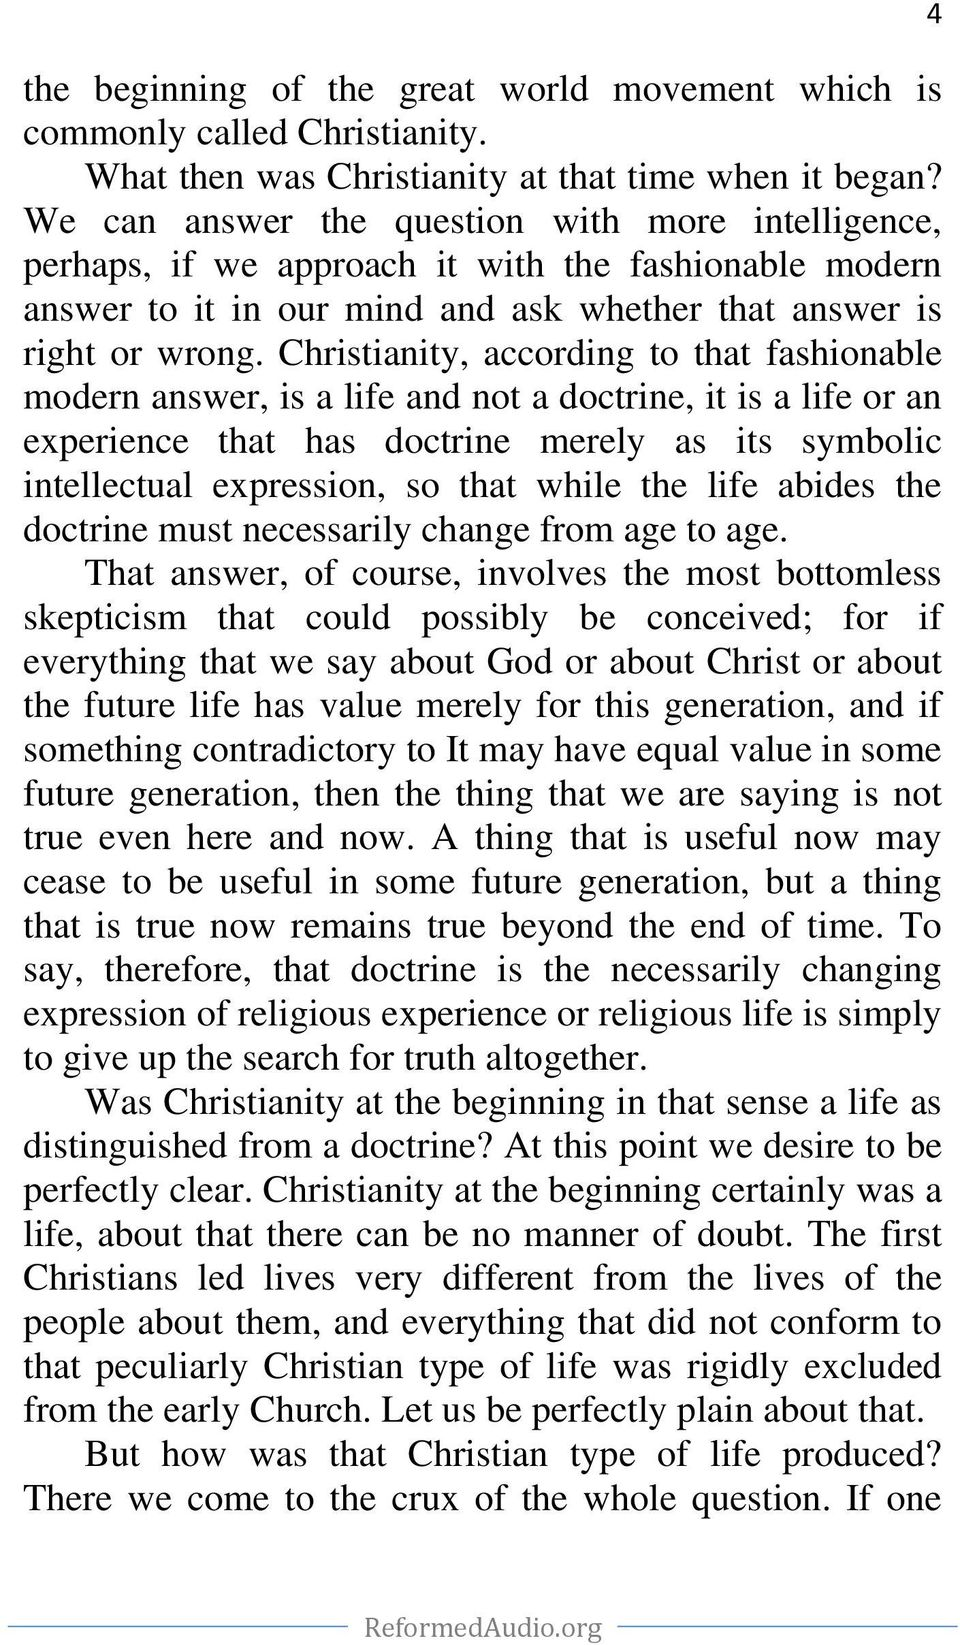 Christianity, according to that fashionable modern answer, is a life and not a doctrine, it is a life or an experience that has doctrine merely as its symbolic intellectual expression, so that while